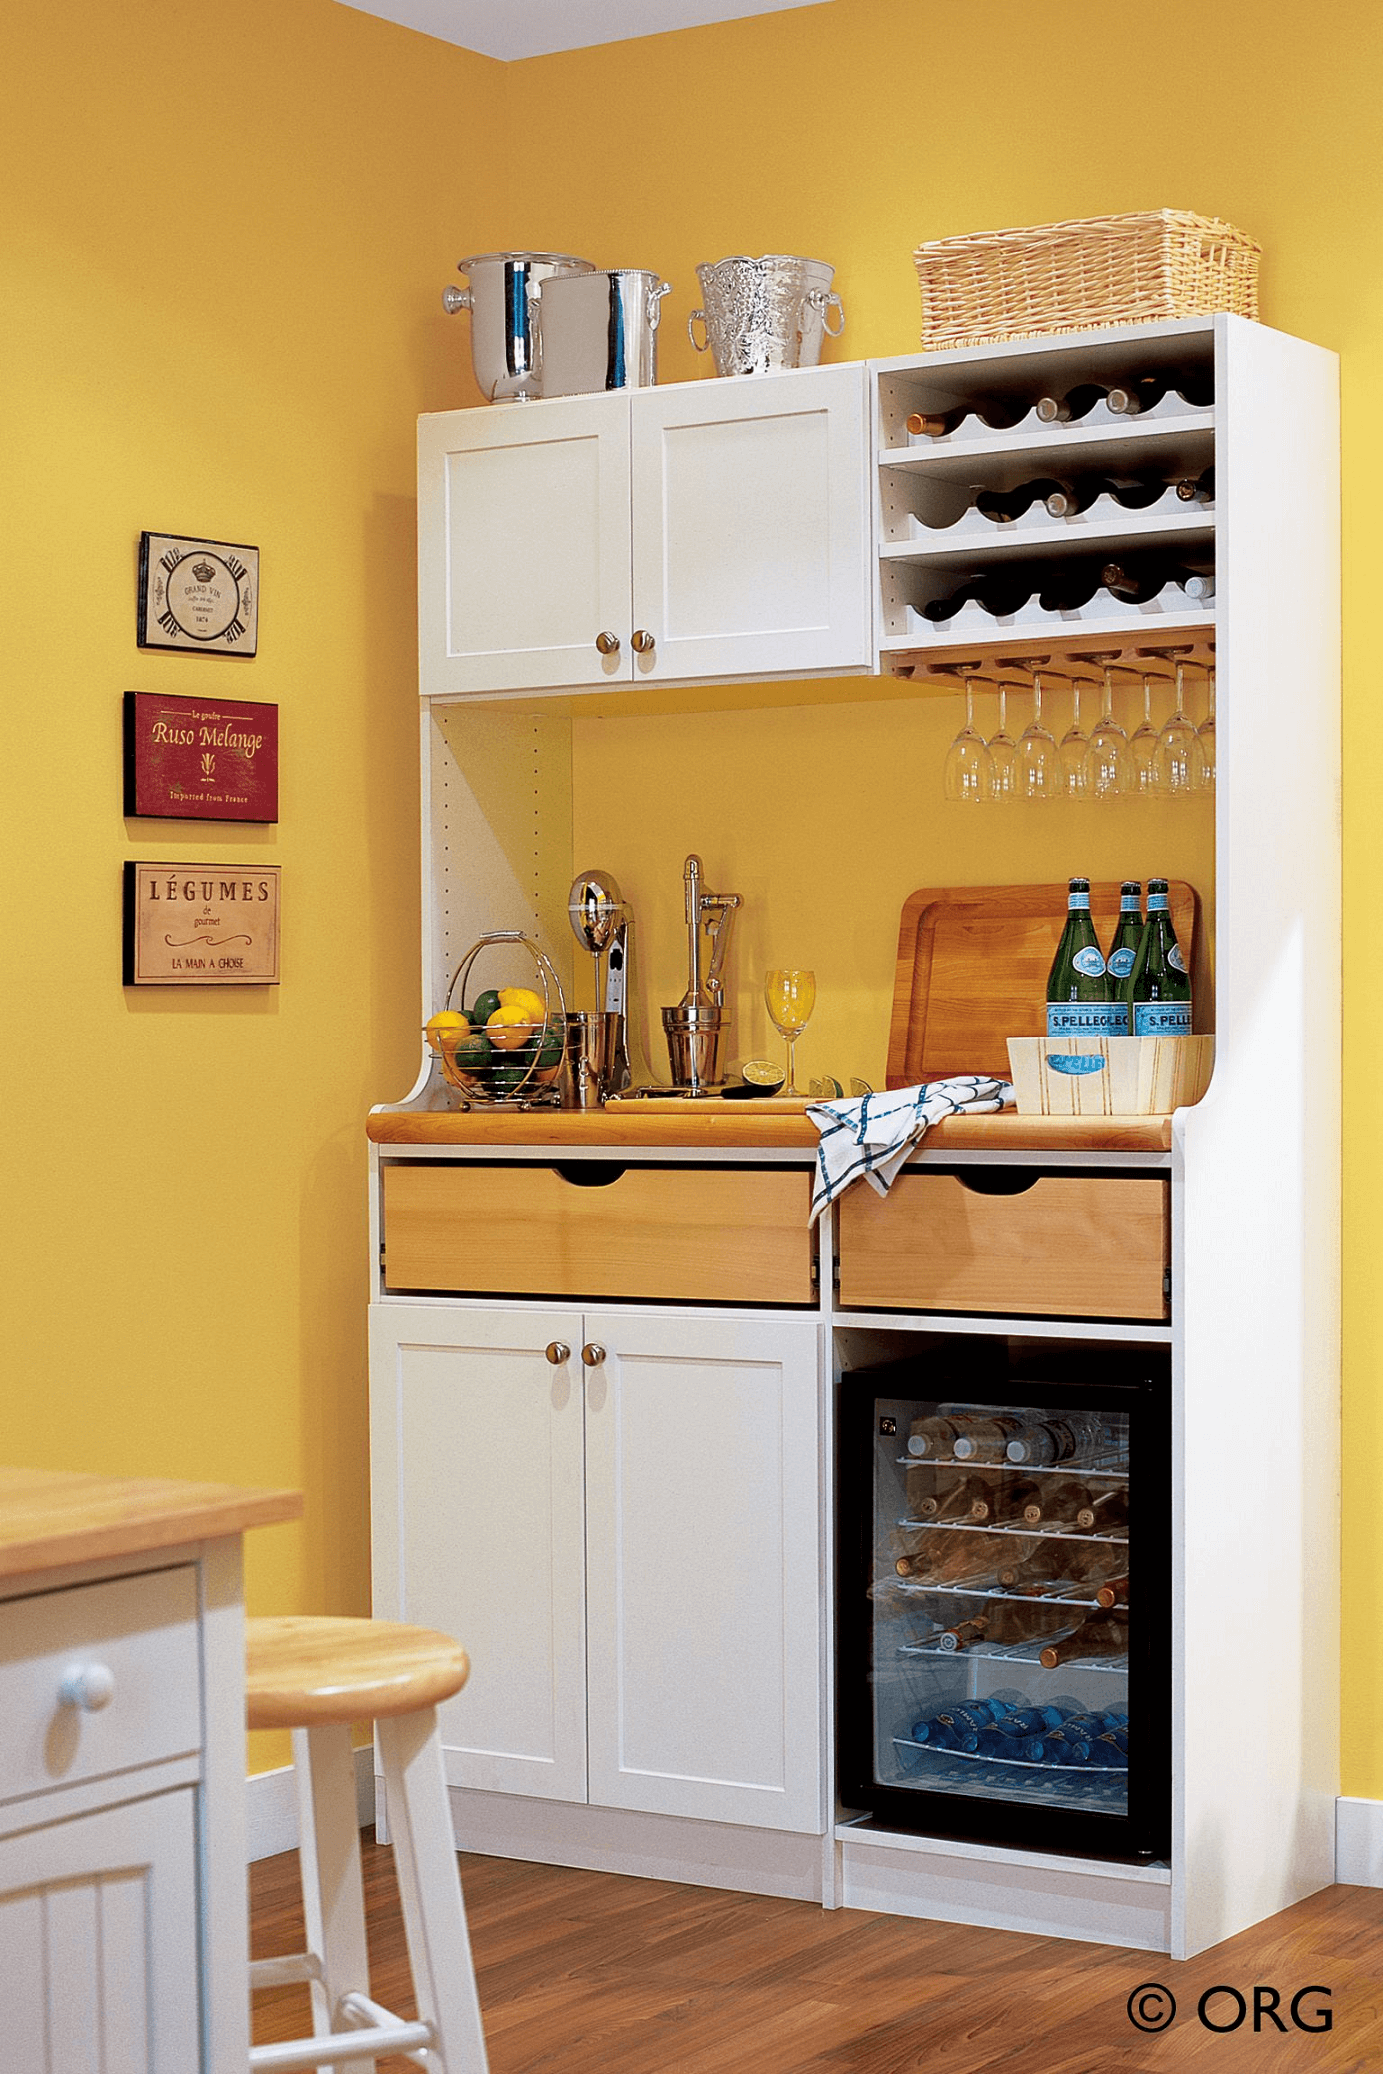 Best Storage Ideas For Small Kitchen You Must Try Small Kitchen Cabinets Small Kitchen Cabinet Storage Kitchen Storage Solutions